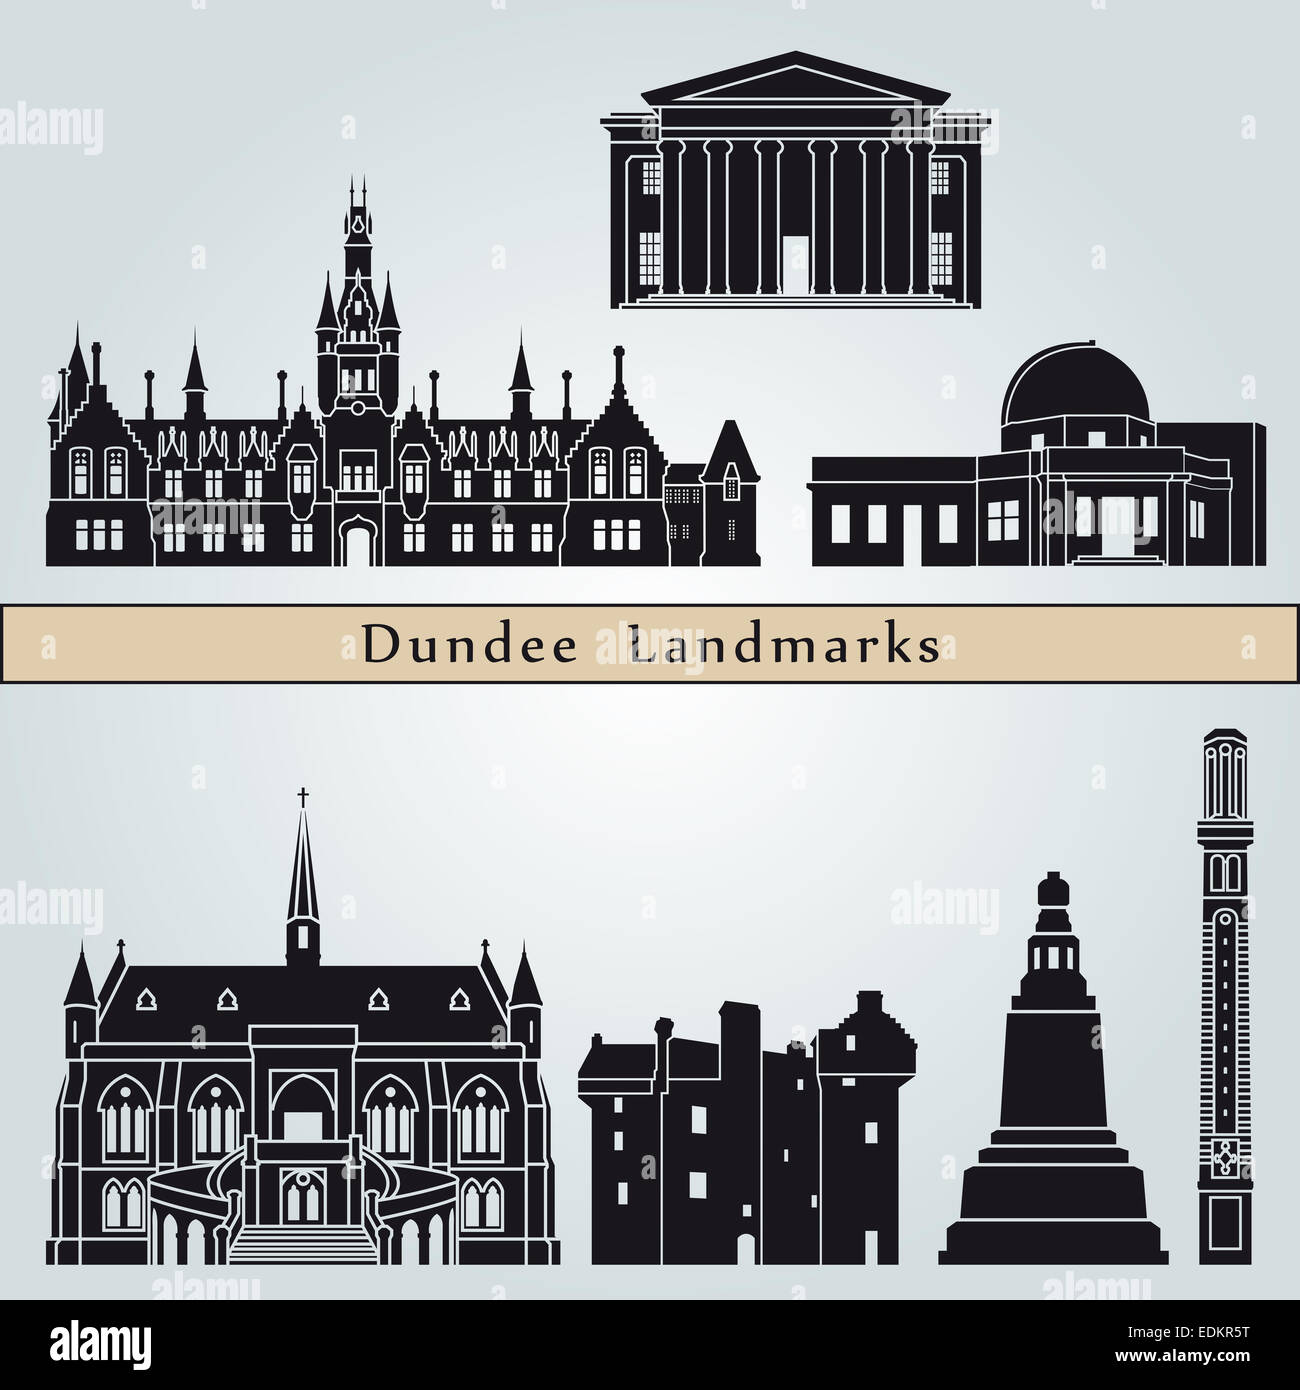 Dundee landmarks and monuments - Stock Image